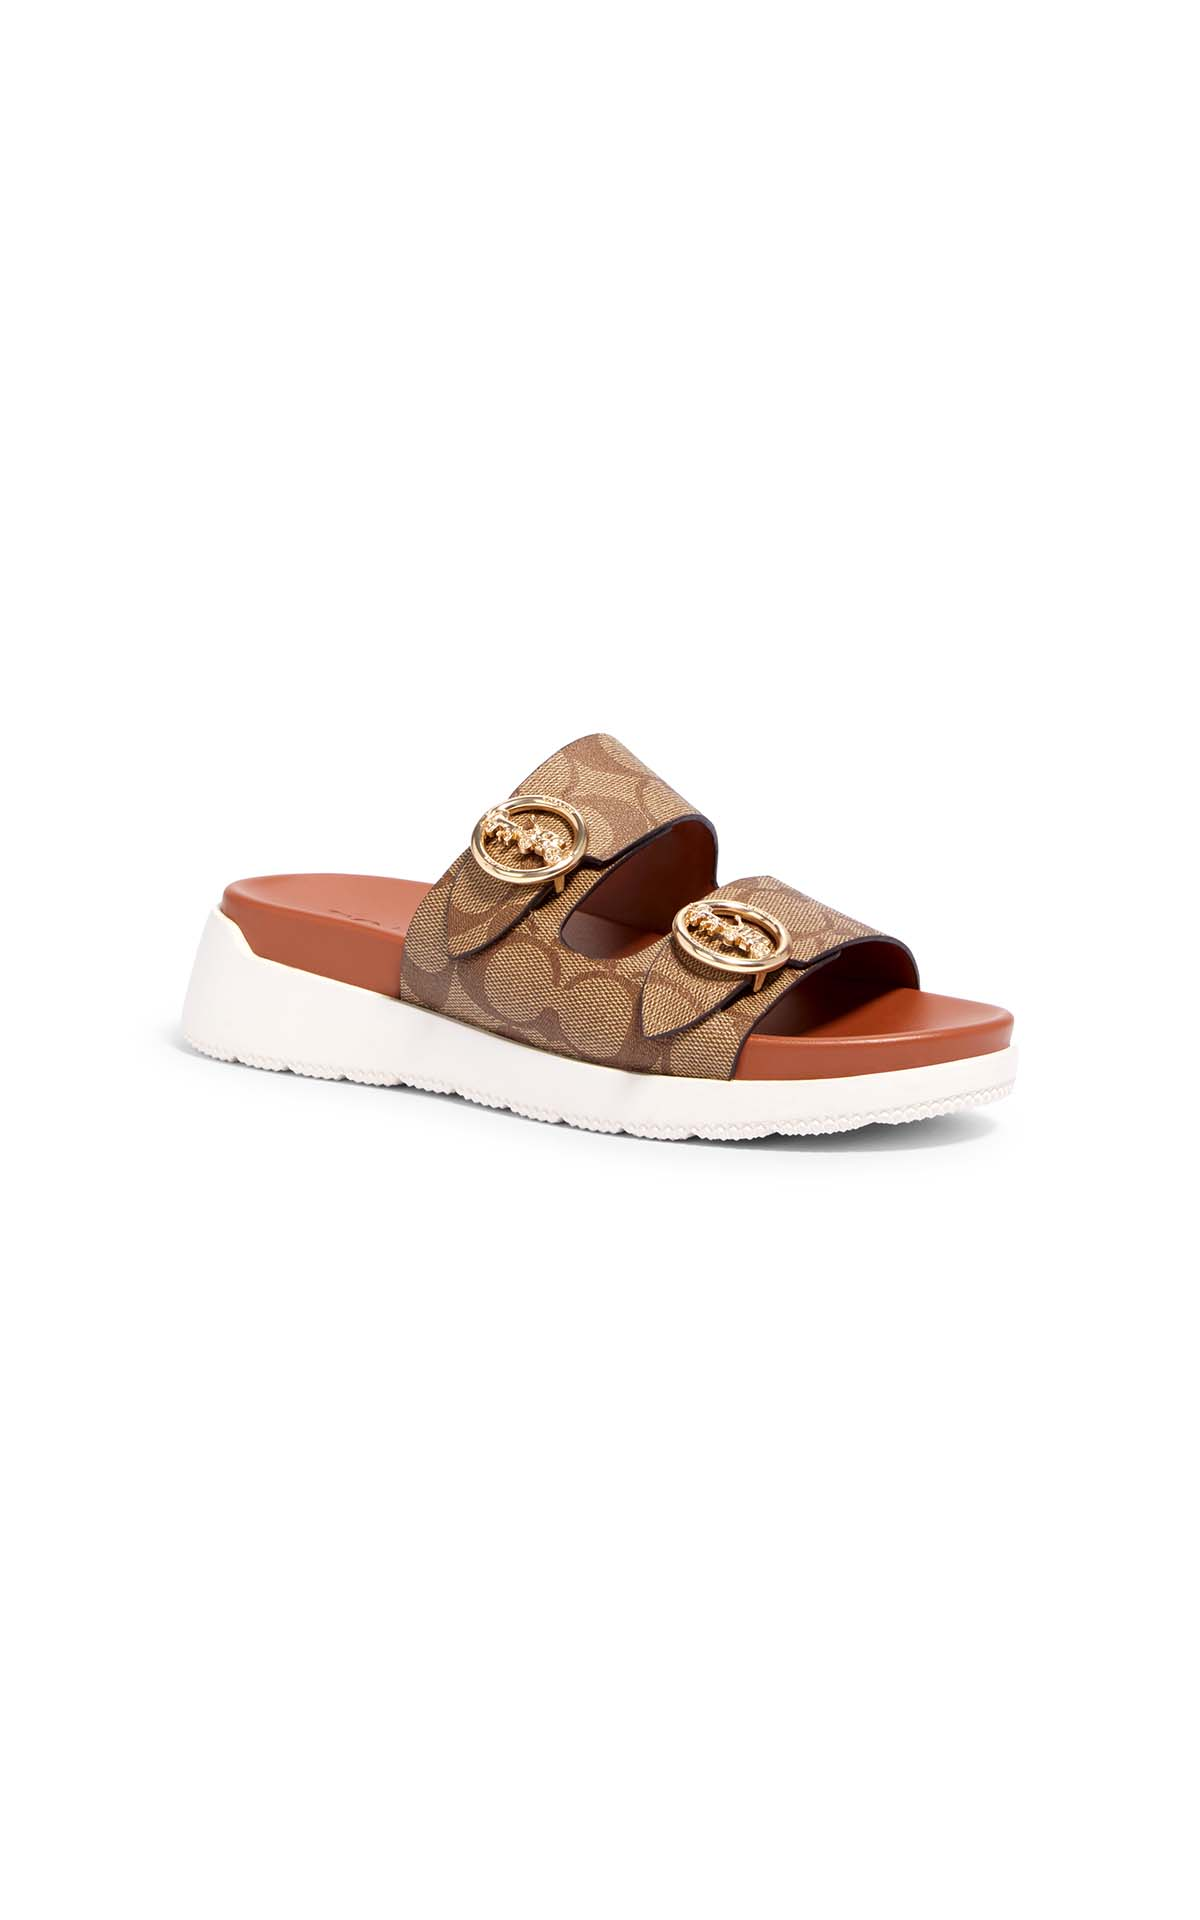 Coach Gable signature sandal at The Bicester VIllage Shopping Collection